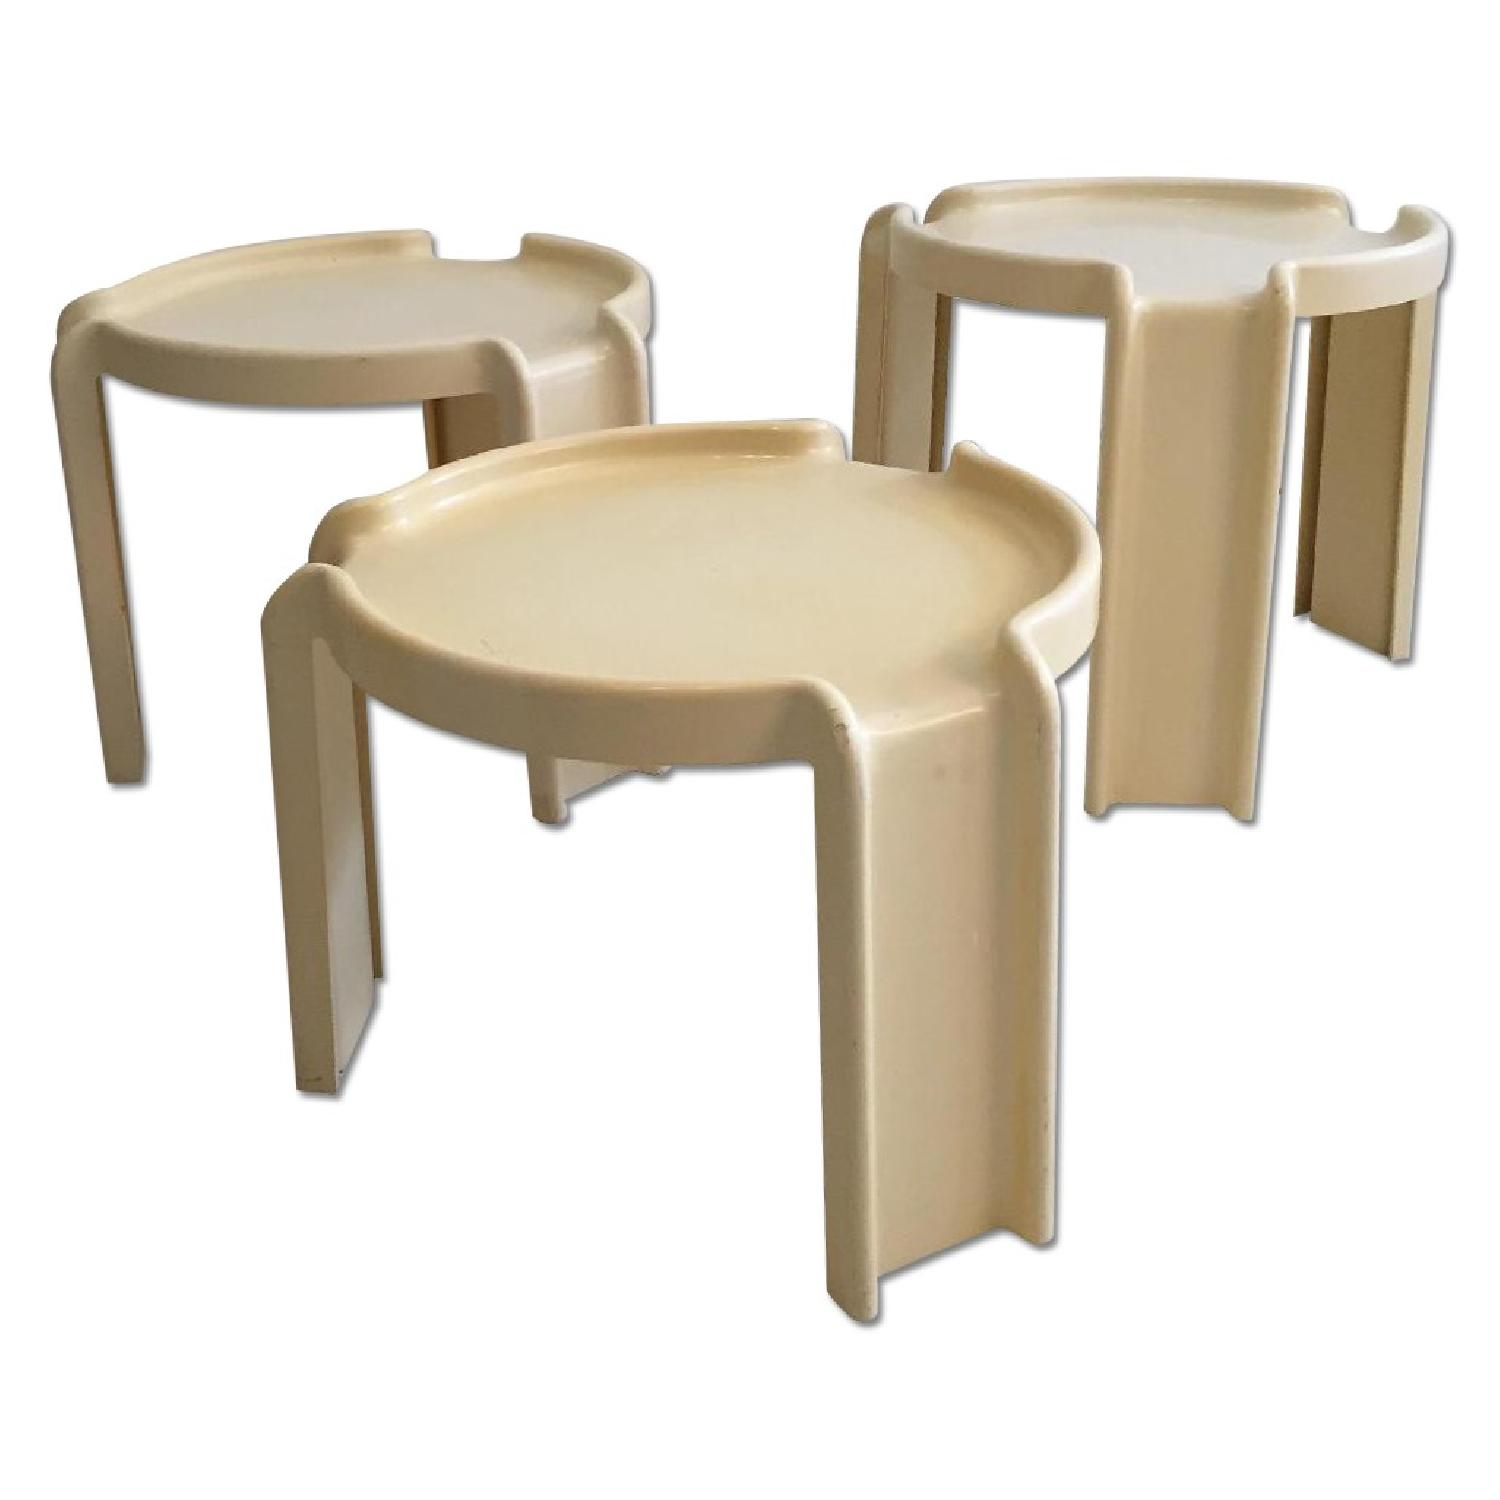 Kartell Early Production Stacking Side Tables - image-0